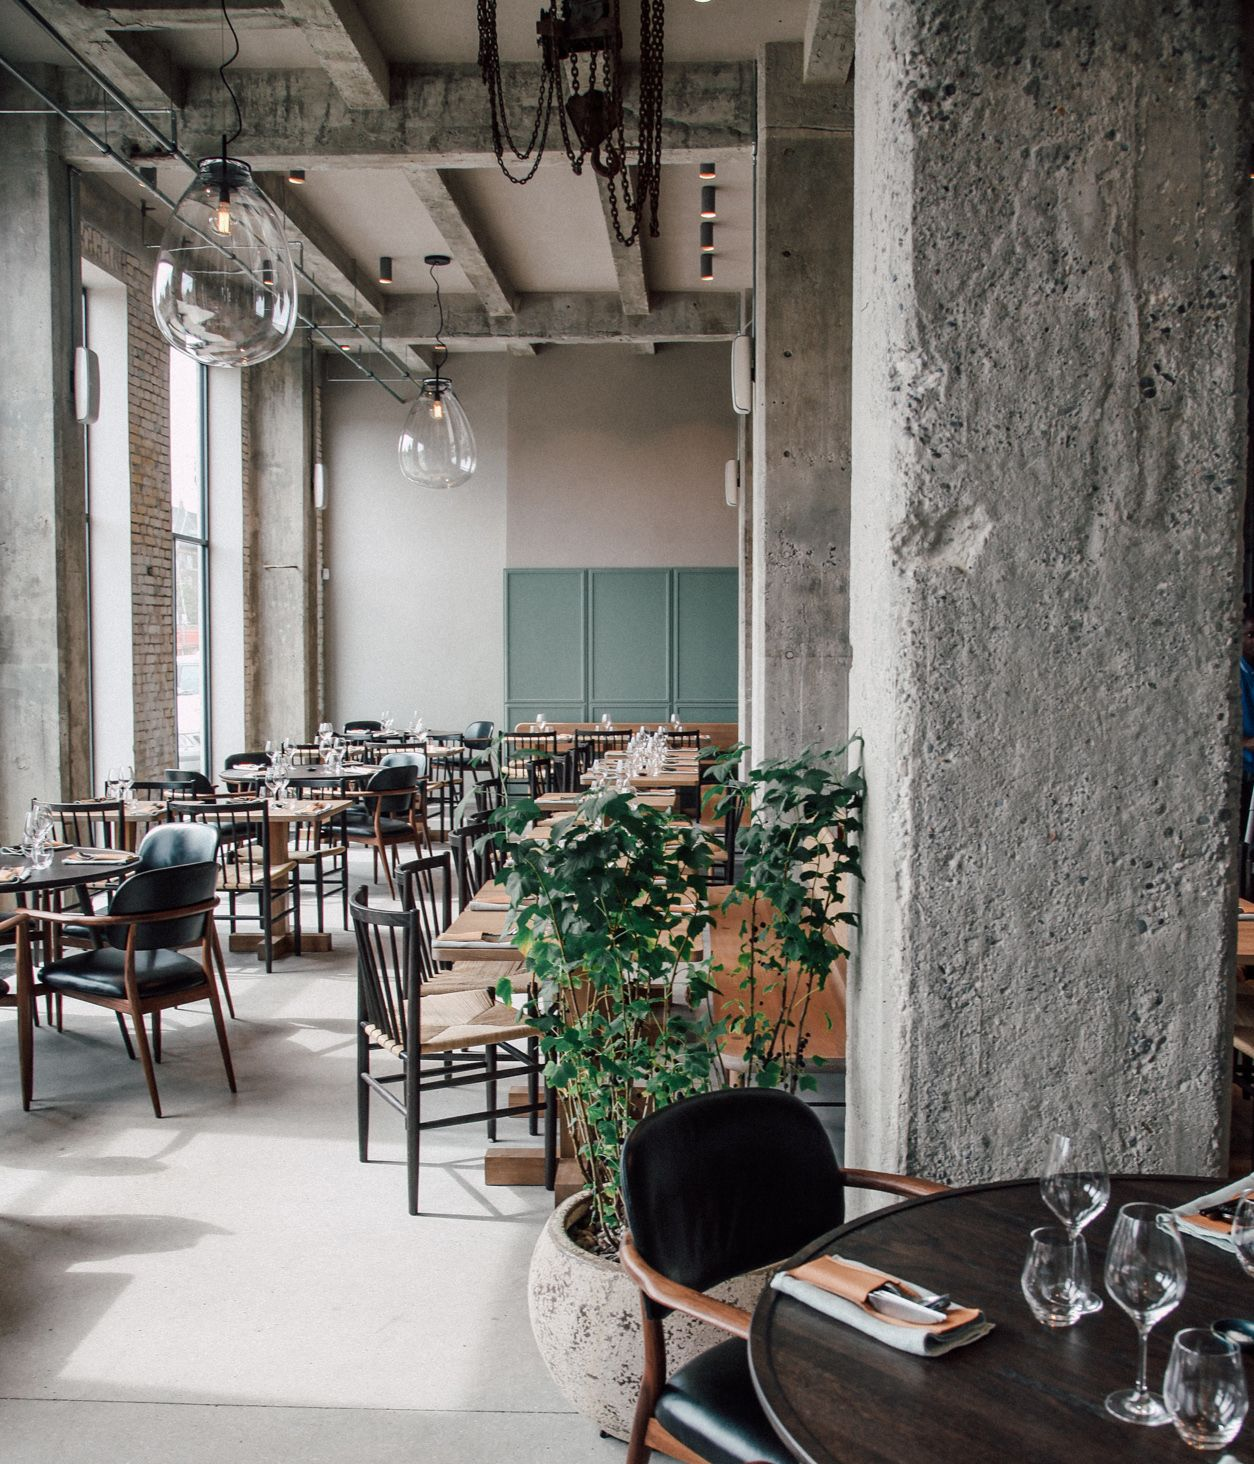 Copenhagen noma s sister restaurant happy trails